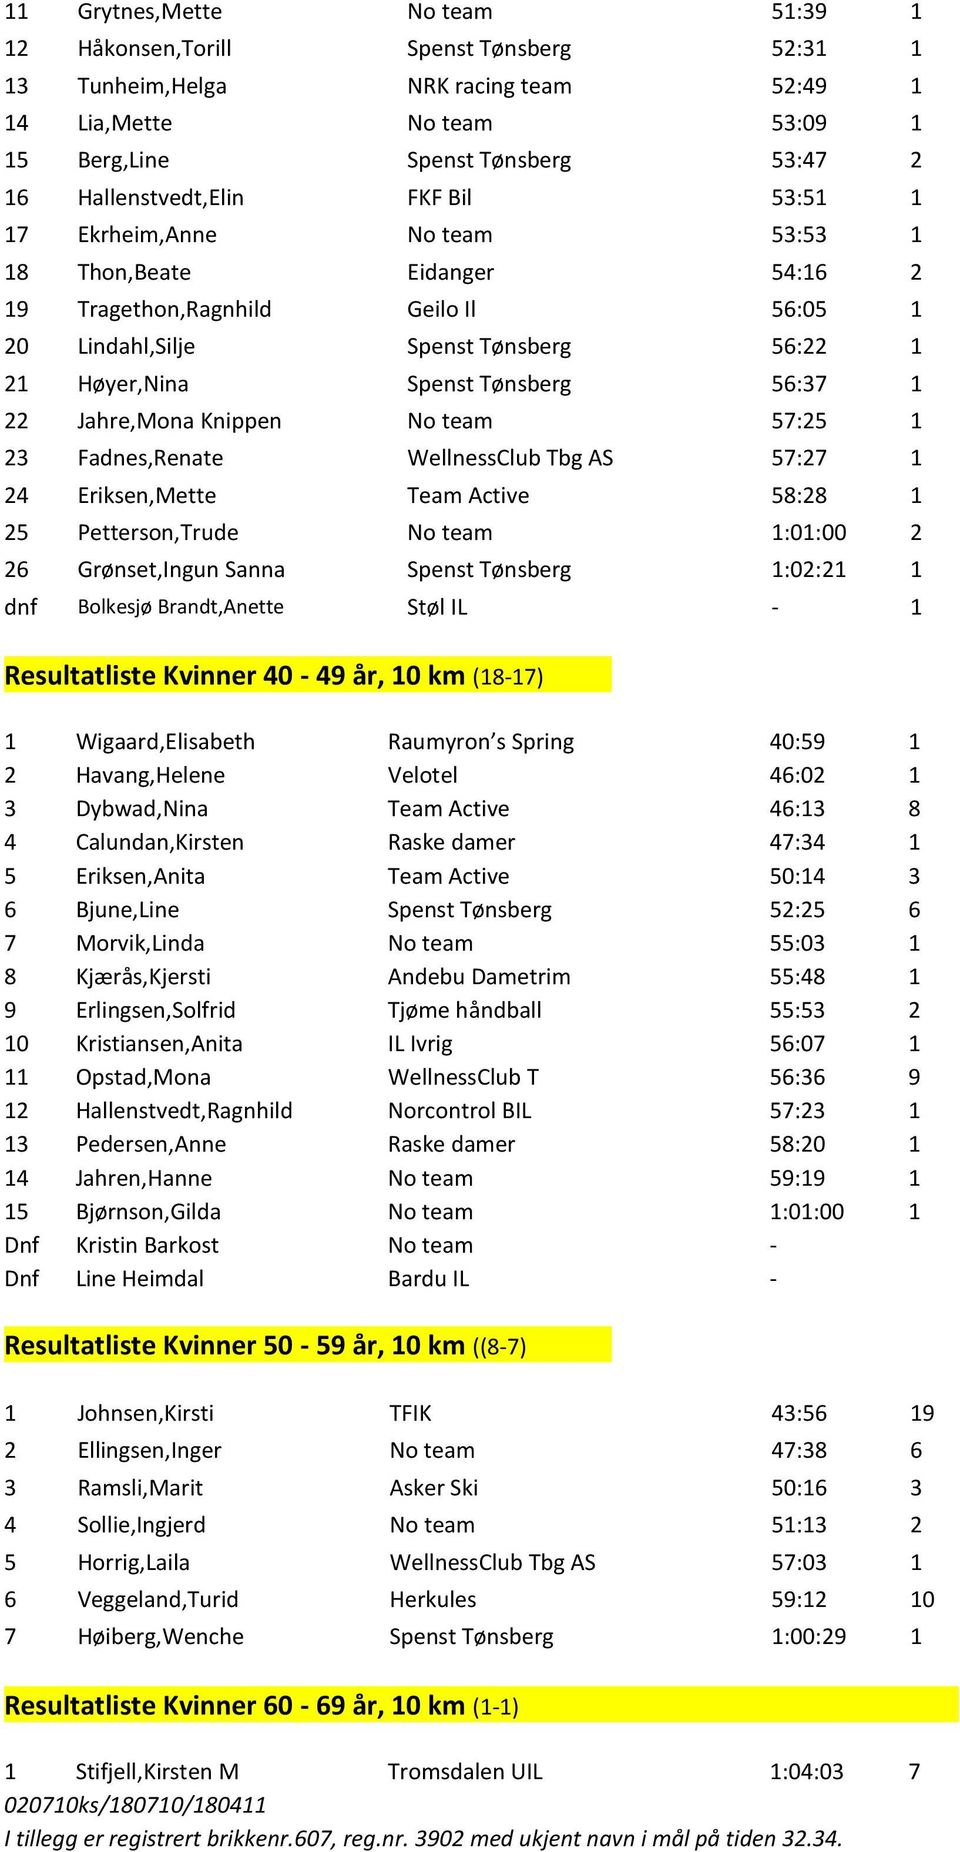 Tønsberg 56:37 1 22 Jahre,Mona Knippen No team 57:25 1 23 Fadnes,Renate WellnessClub Tbg AS 57:27 1 24 Eriksen,Mette Team Active 58:28 1 25 Petterson,Trude No team 1:01:00 2 26 Grønset,Ingun Sanna